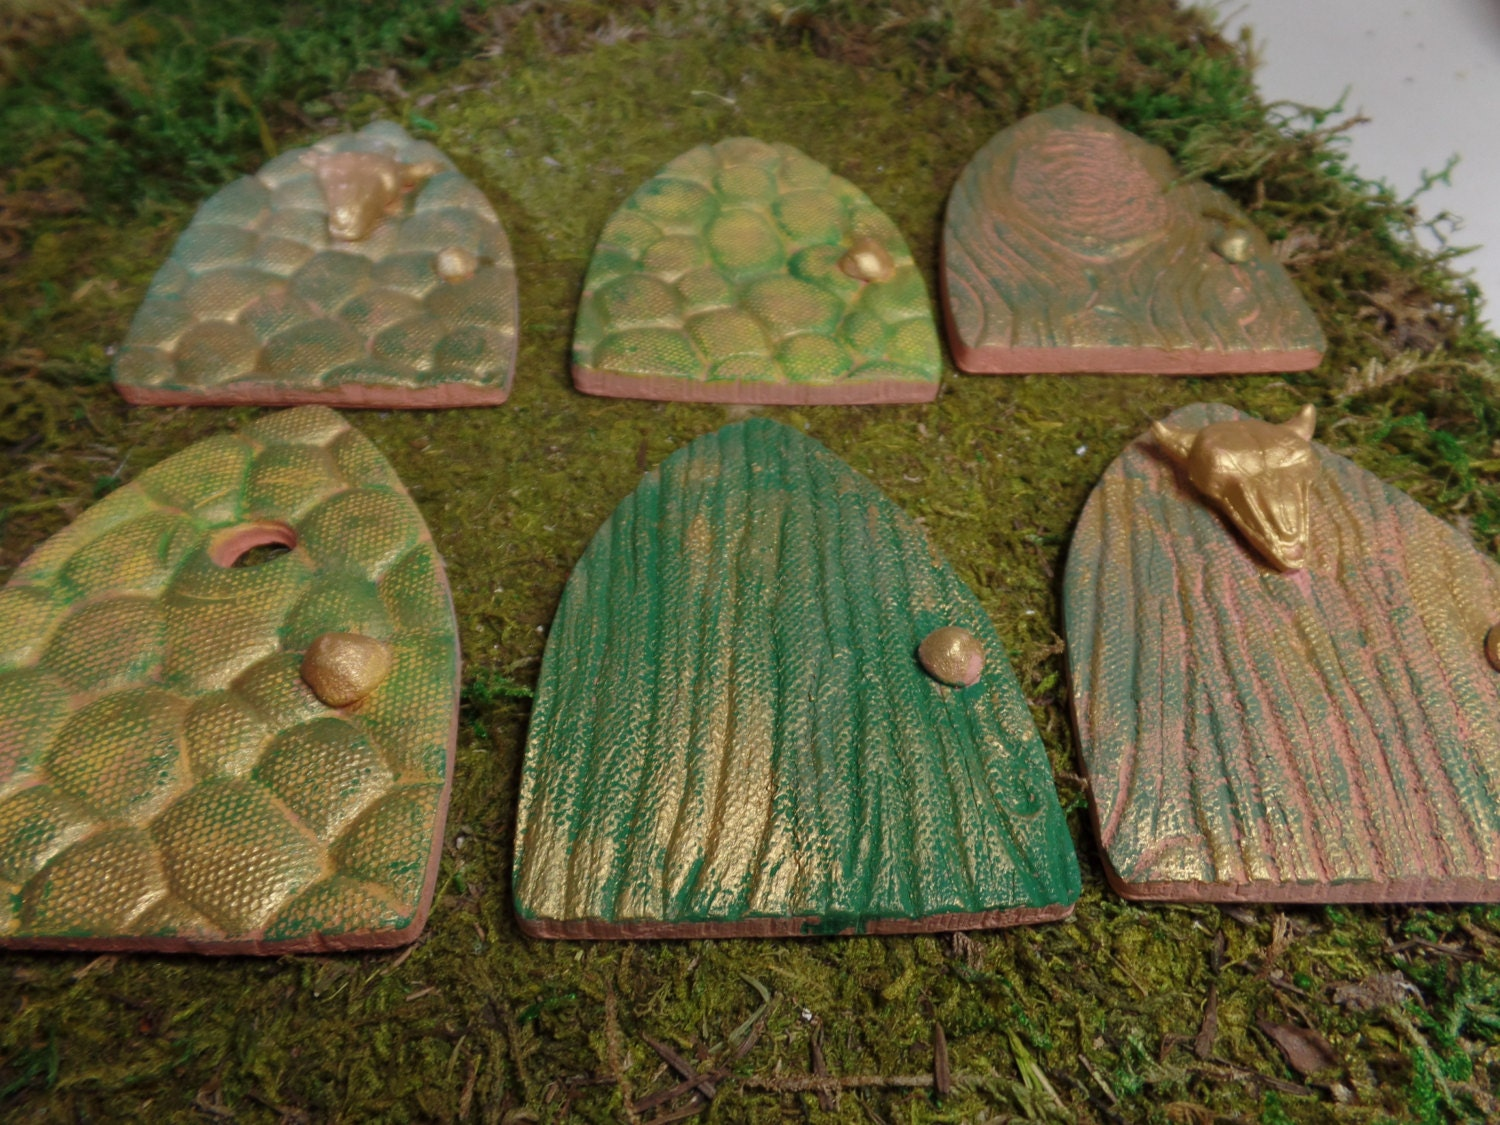 Fairy garden miniature doors medieval magic terra cotta for Fairy door kits canada